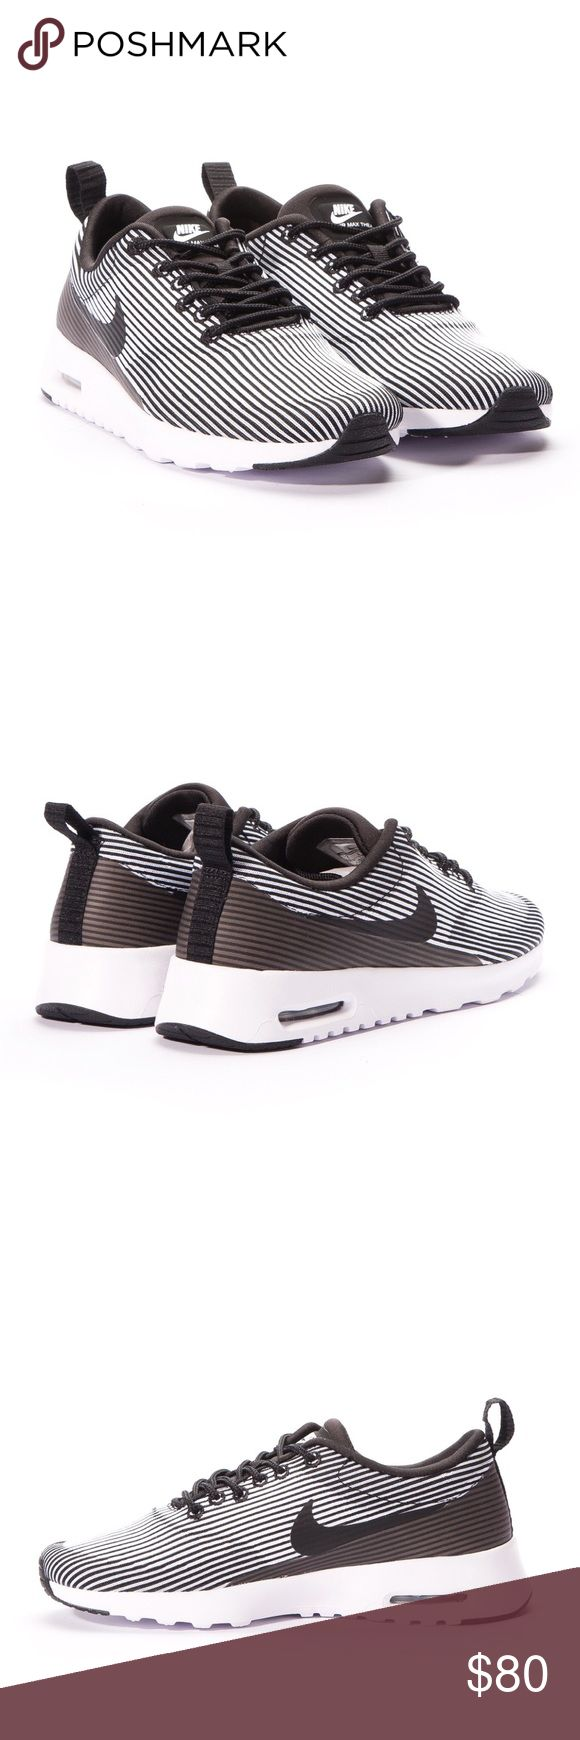 Nike Air Max Thea Black and white striped air max Thea. New without box. Nike Shoes Athletic Shoes